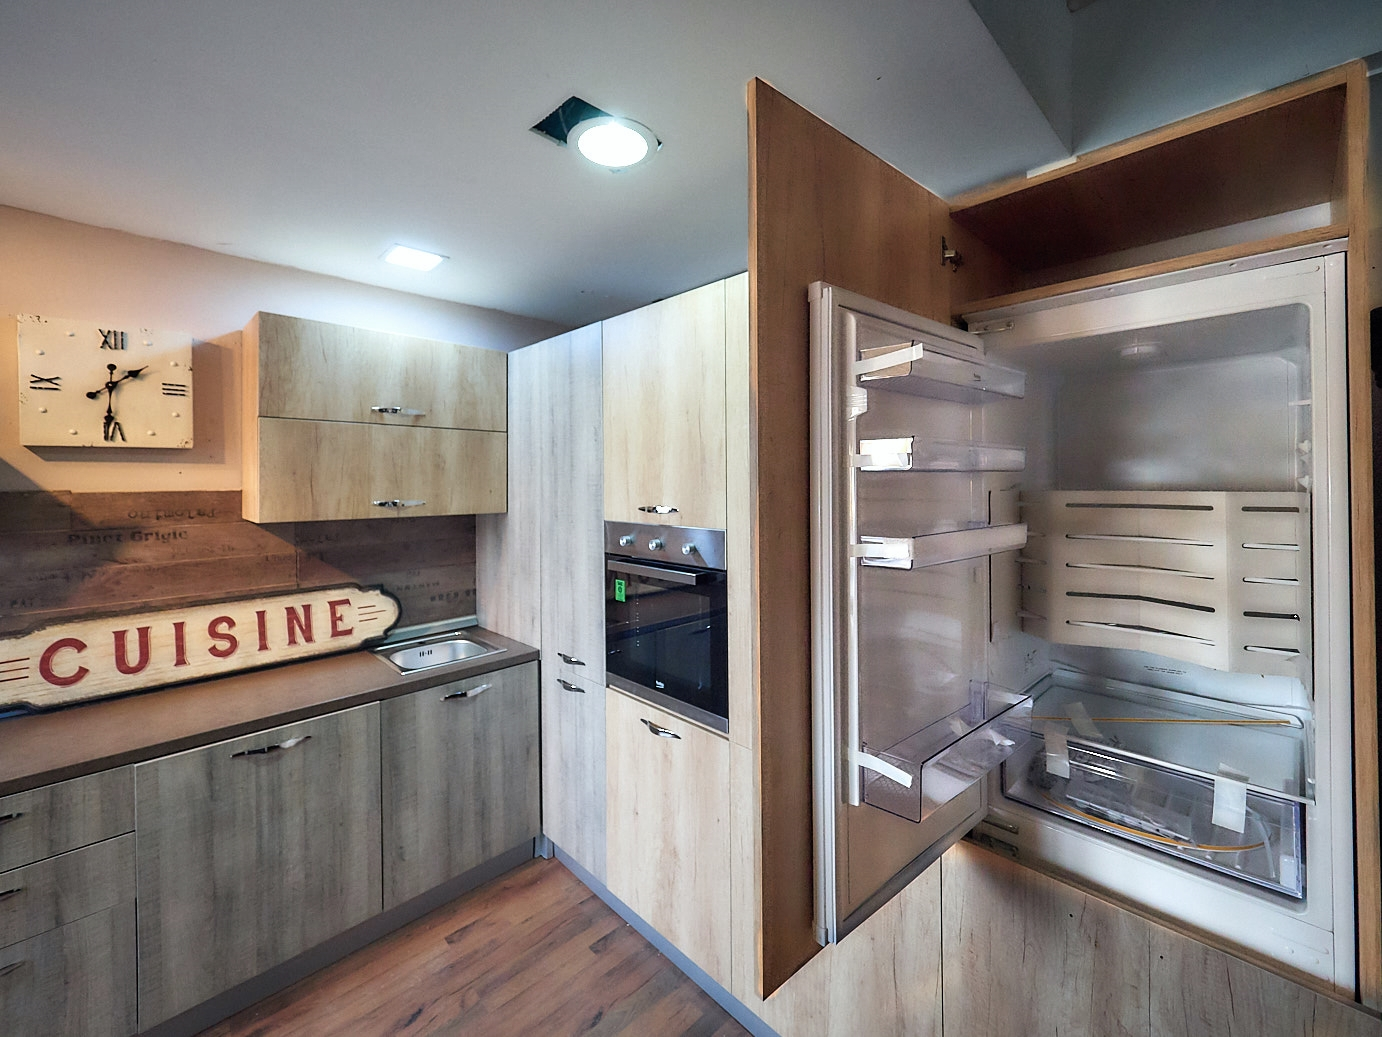 Beautiful Cucine Con Dispensa Contemporary - Brentwoodseasidecabins ...